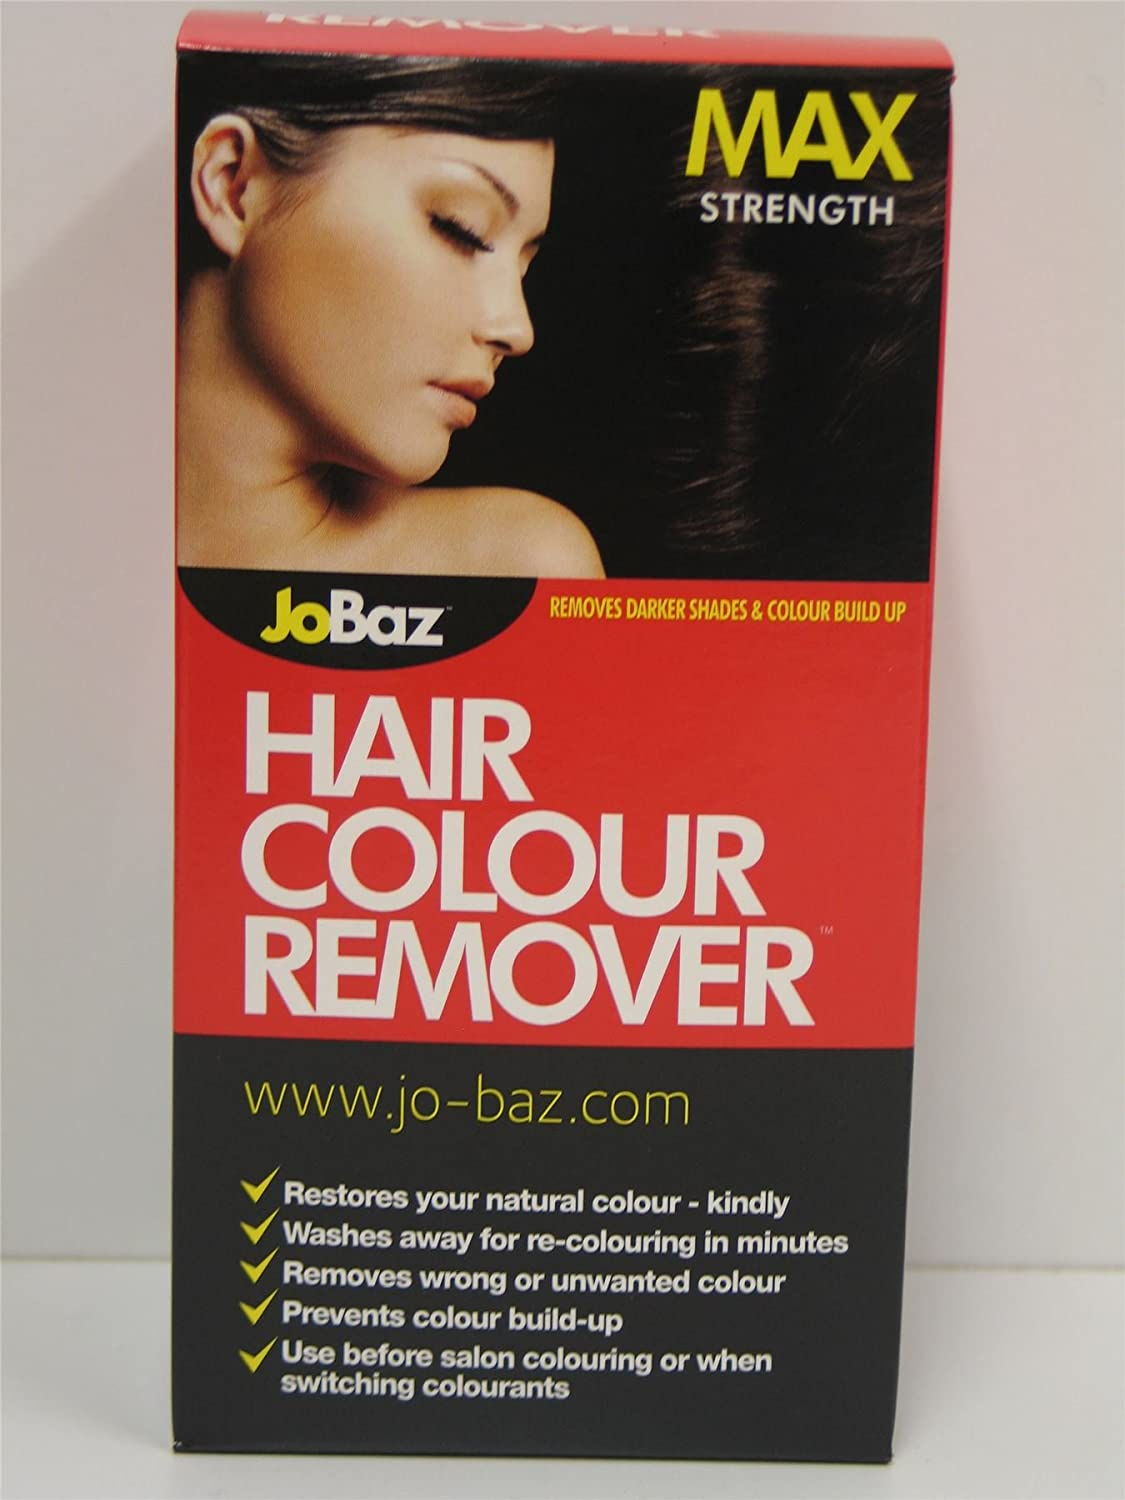 2 X JOBAZ HAIR COLOUR REMOVER MAX STRENGTH REMOVES DARKER SHADES COLOUR BUILD UP